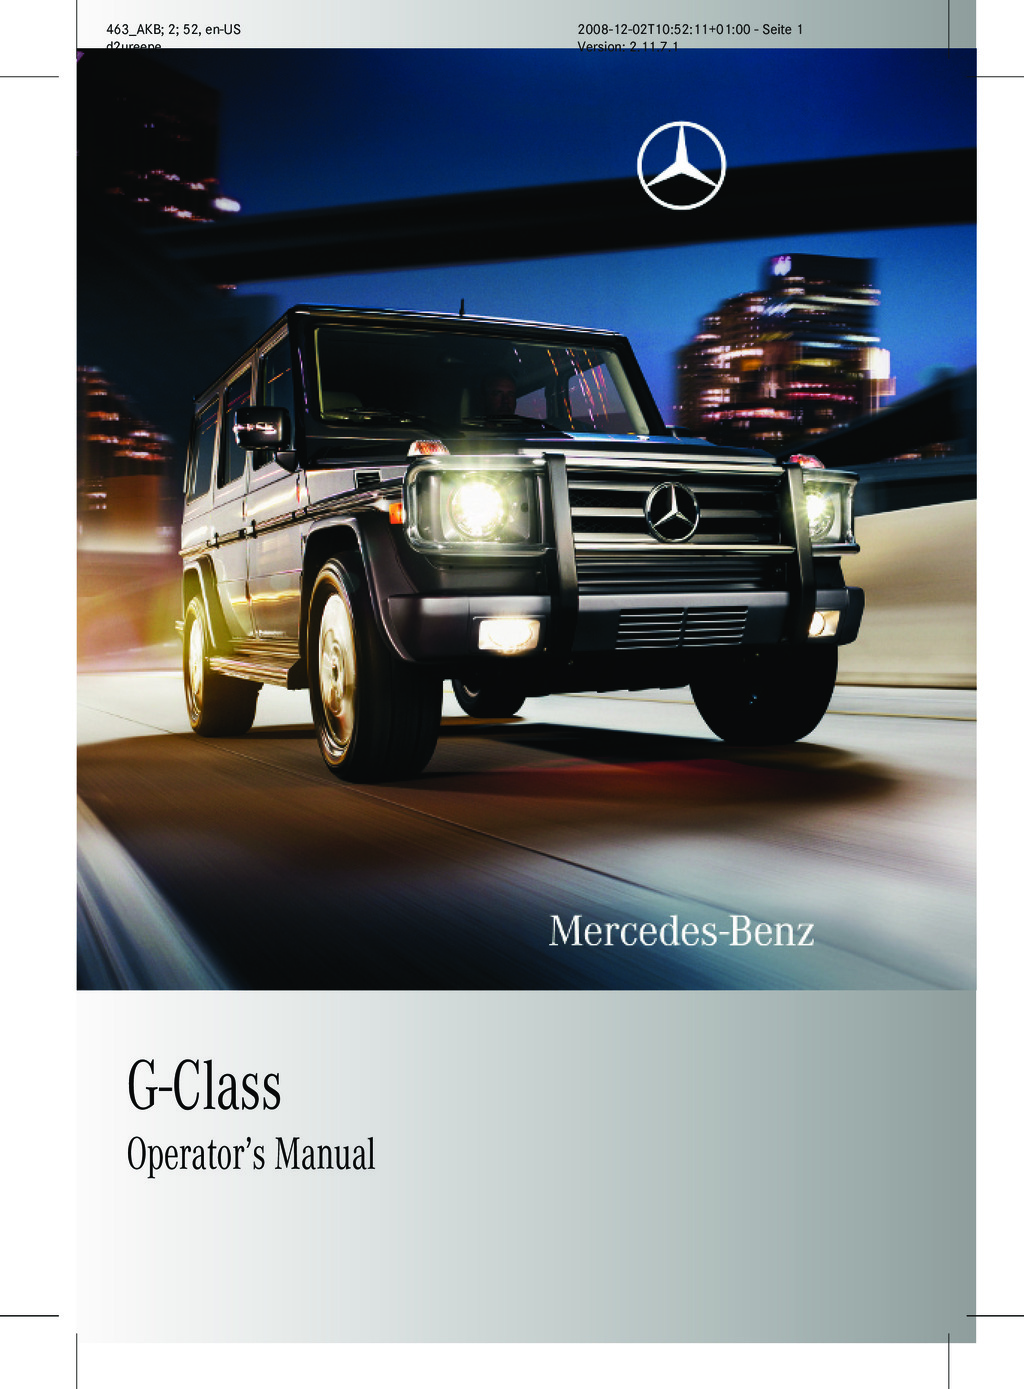 2009 Mercedes-Benz G Class owners manual